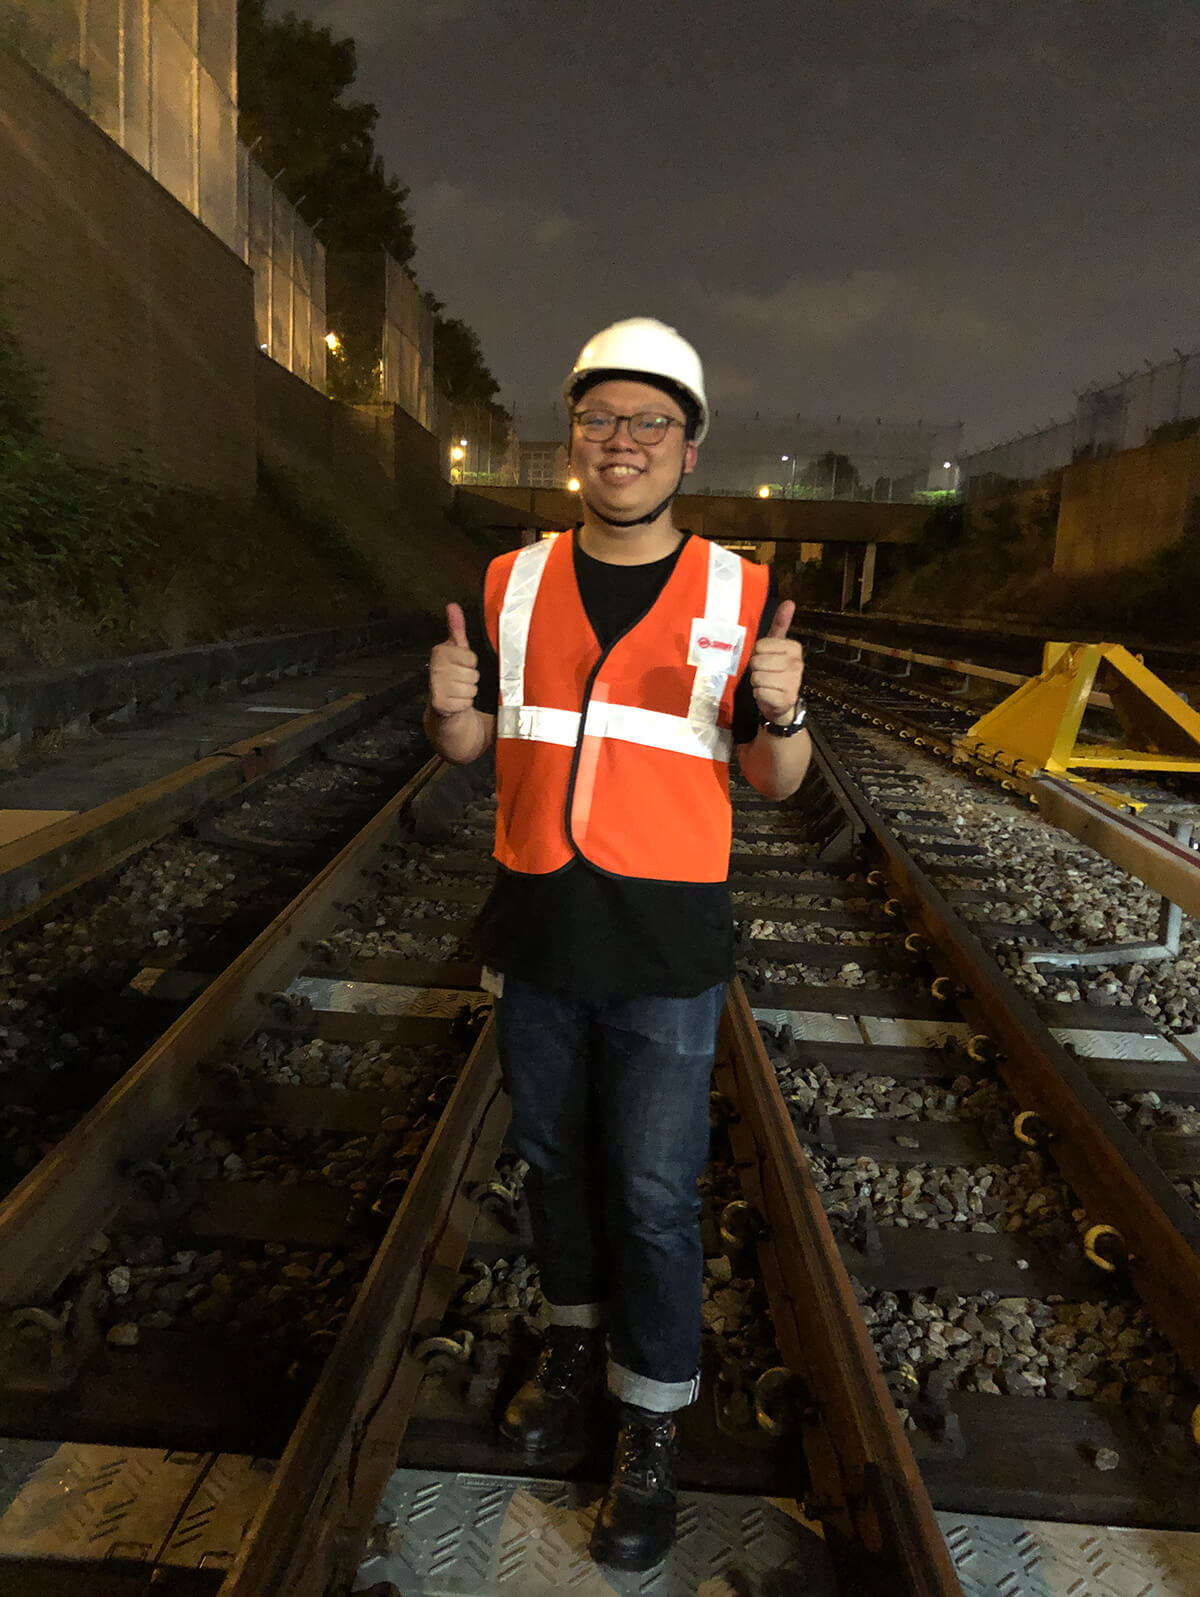 Samuel Tan dons a worker's vest and gives two thumbs up while standing on train tracks at night.